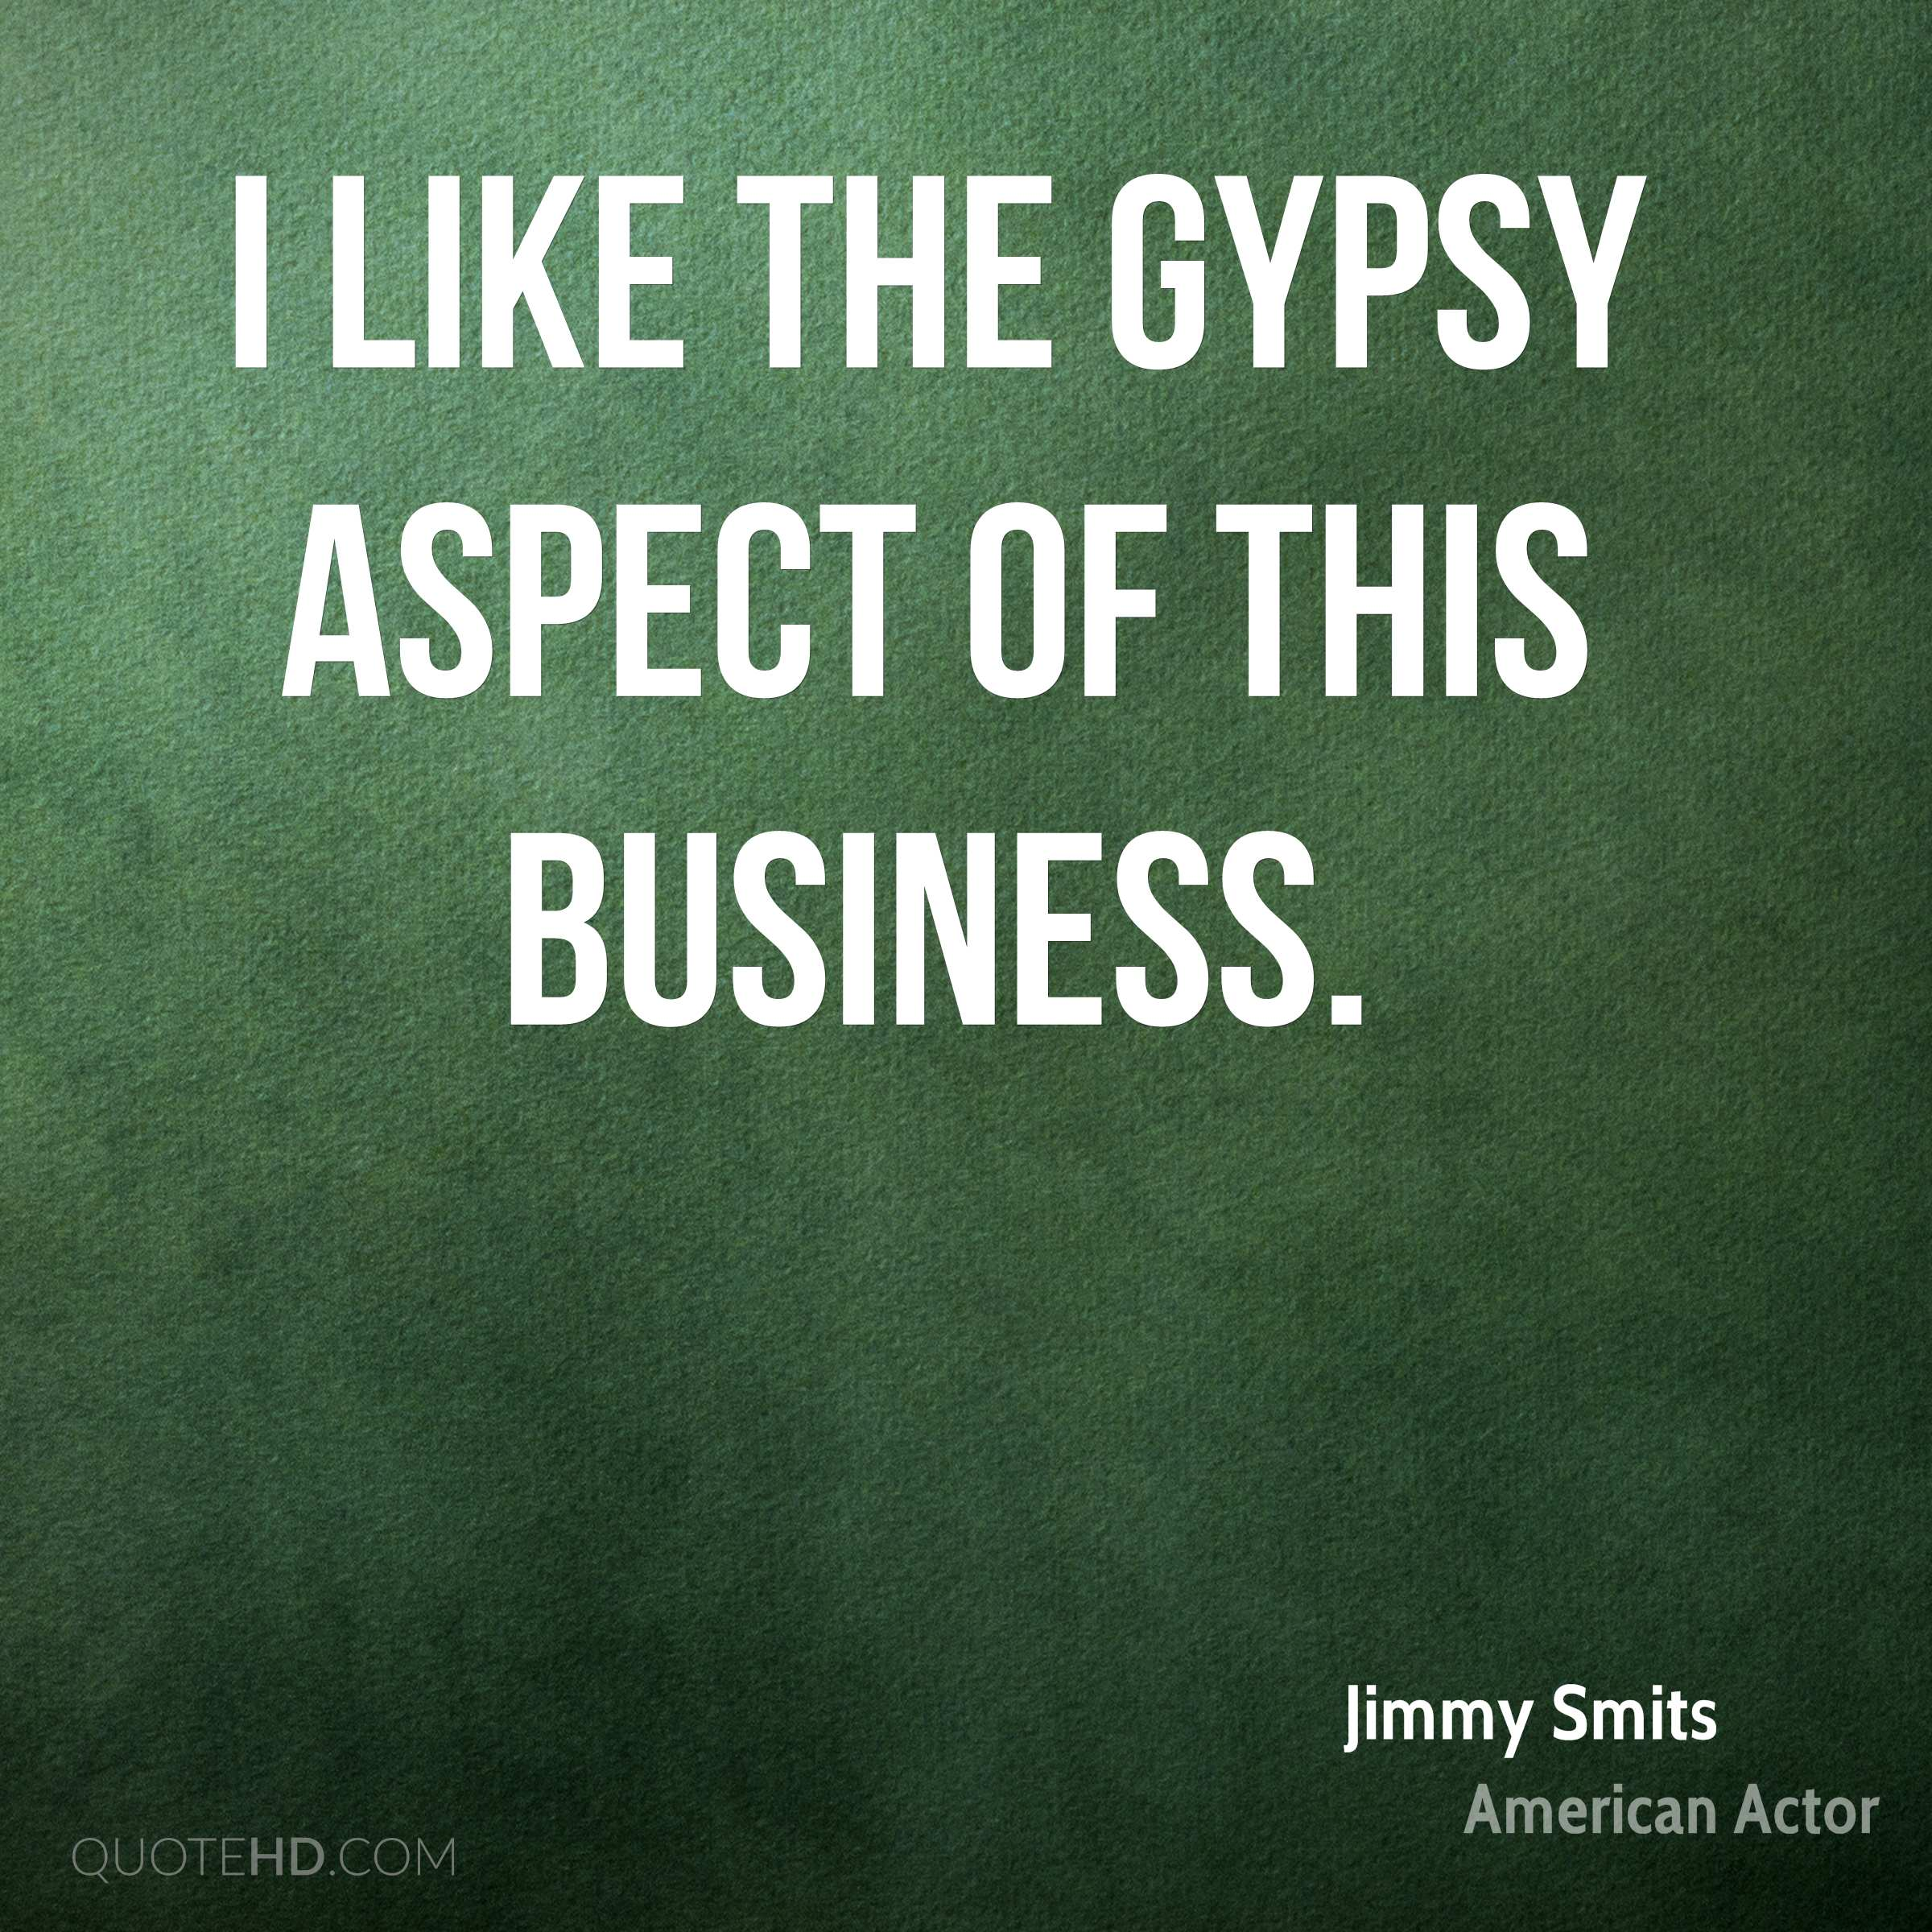 I like the gypsy aspect of this business.